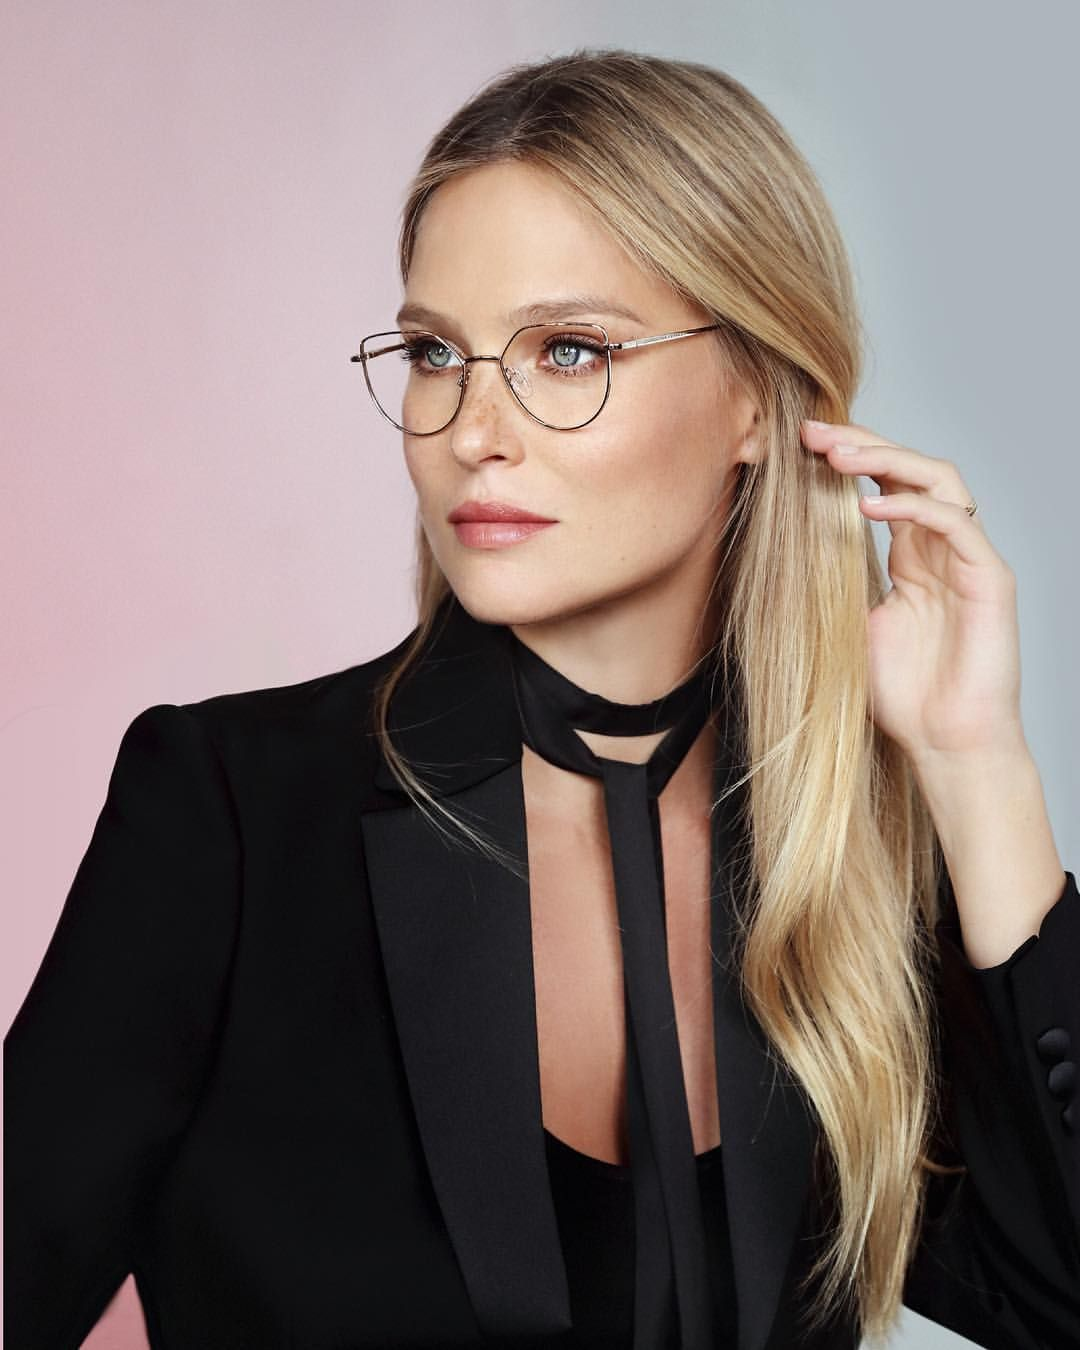 3cd2a5a546 Gorgeous  barrefaeli in our new optic campaign  CarolinaLemkeOptic Model  No.CL6568-4